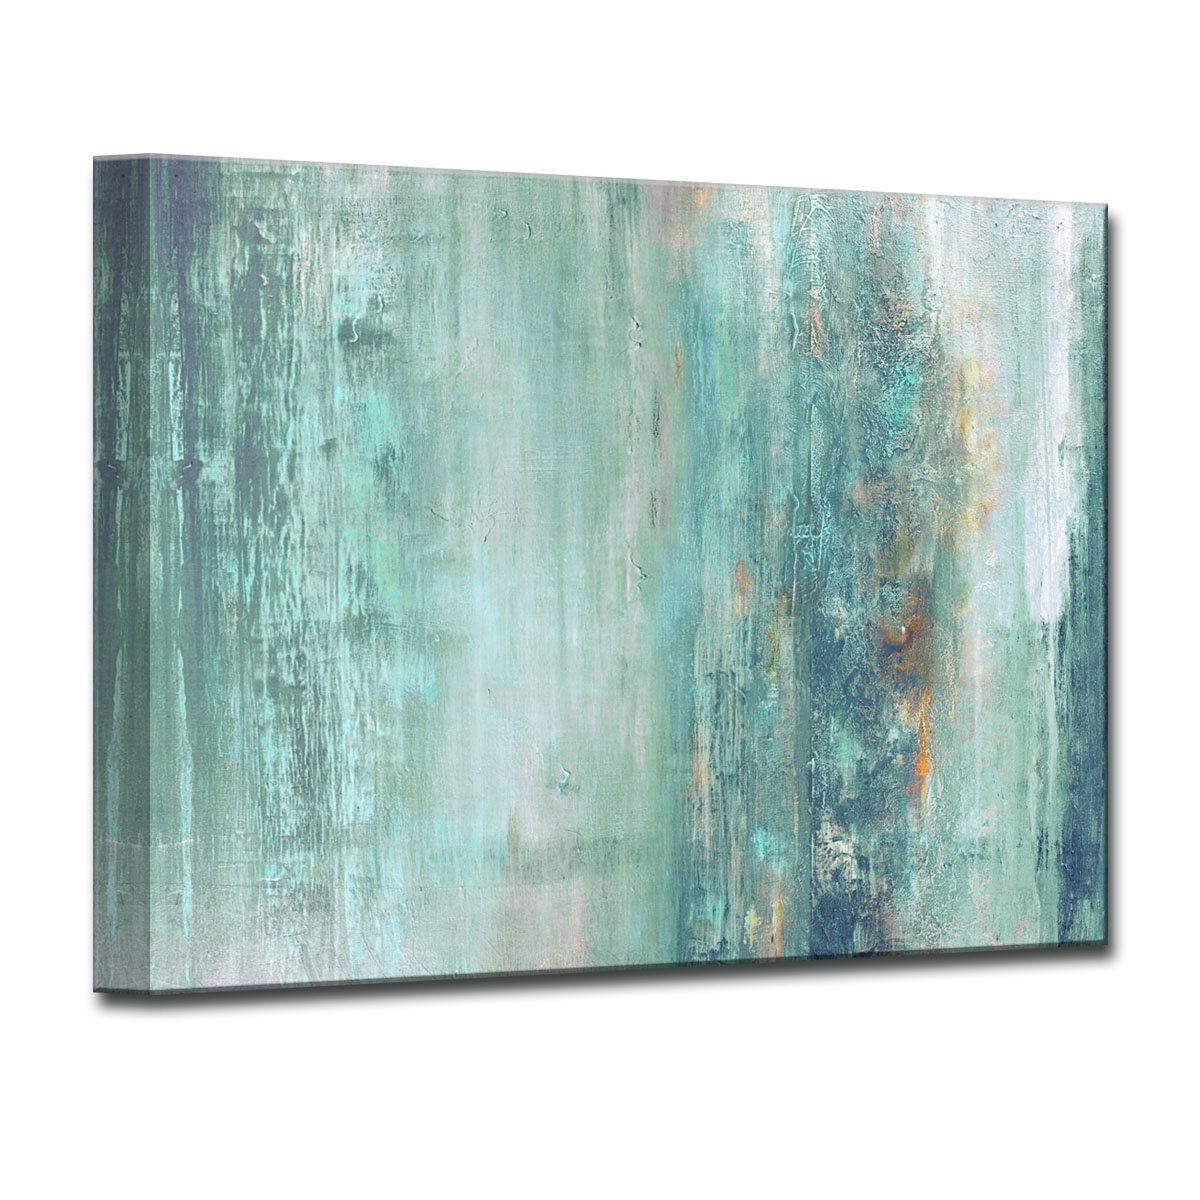 Beachcrest Home 'abstract Spa' Framed Graphic Art Print On Canvas Pertaining To Most Recent Canvas Wall Art At Wayfair (View 4 of 15)